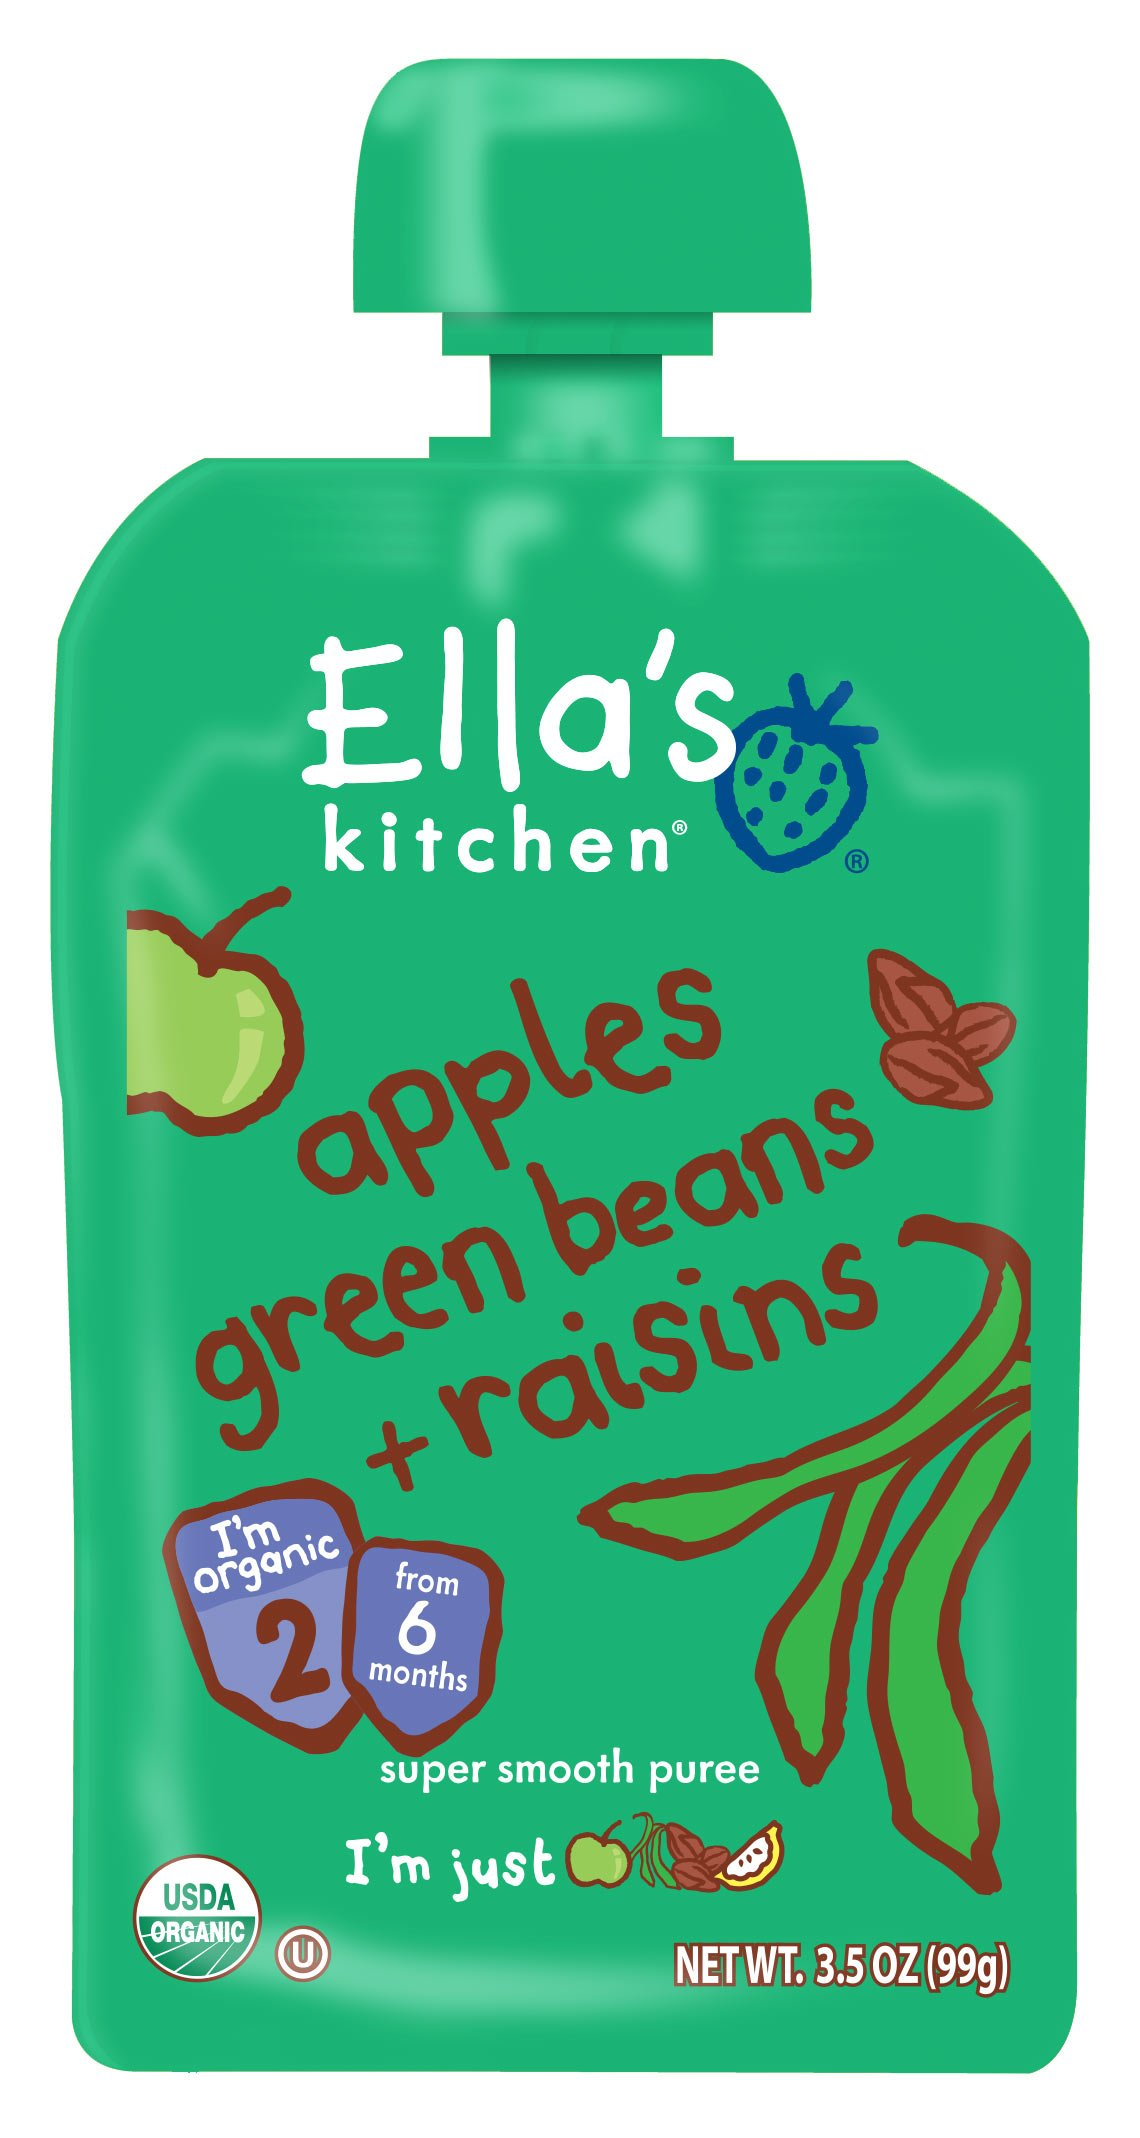 Ella's Kitchen Organic 6+ Months Baby Food, Apples Green Beans and Raisins, 3.5 oz. Pouch